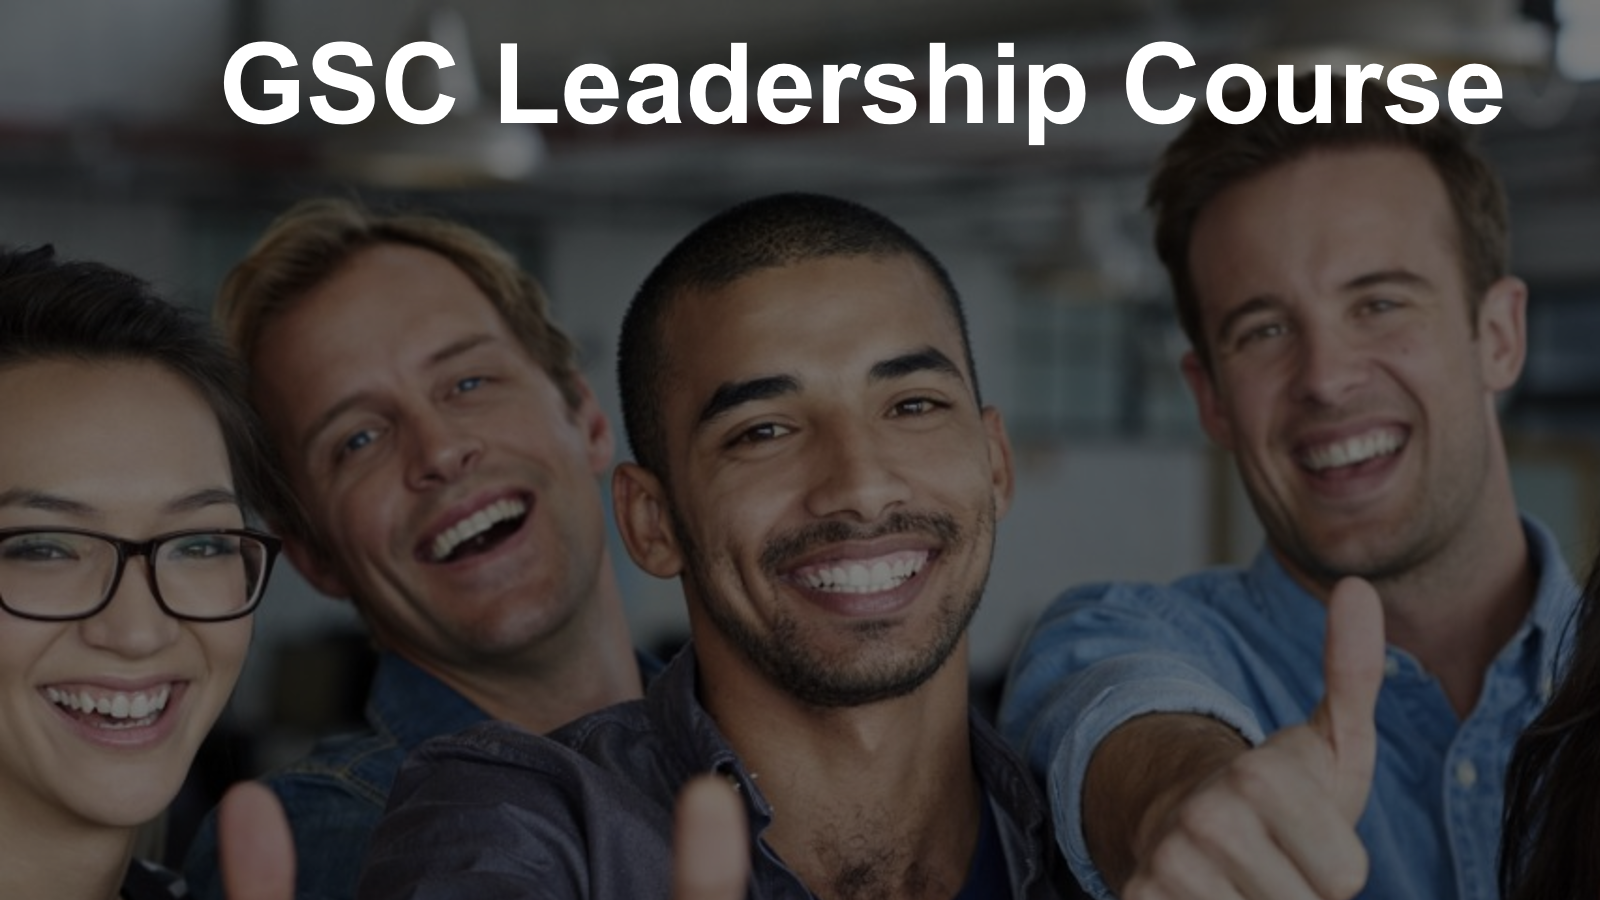 (GSC) - Goal, Structure, Culture Leadership Training System